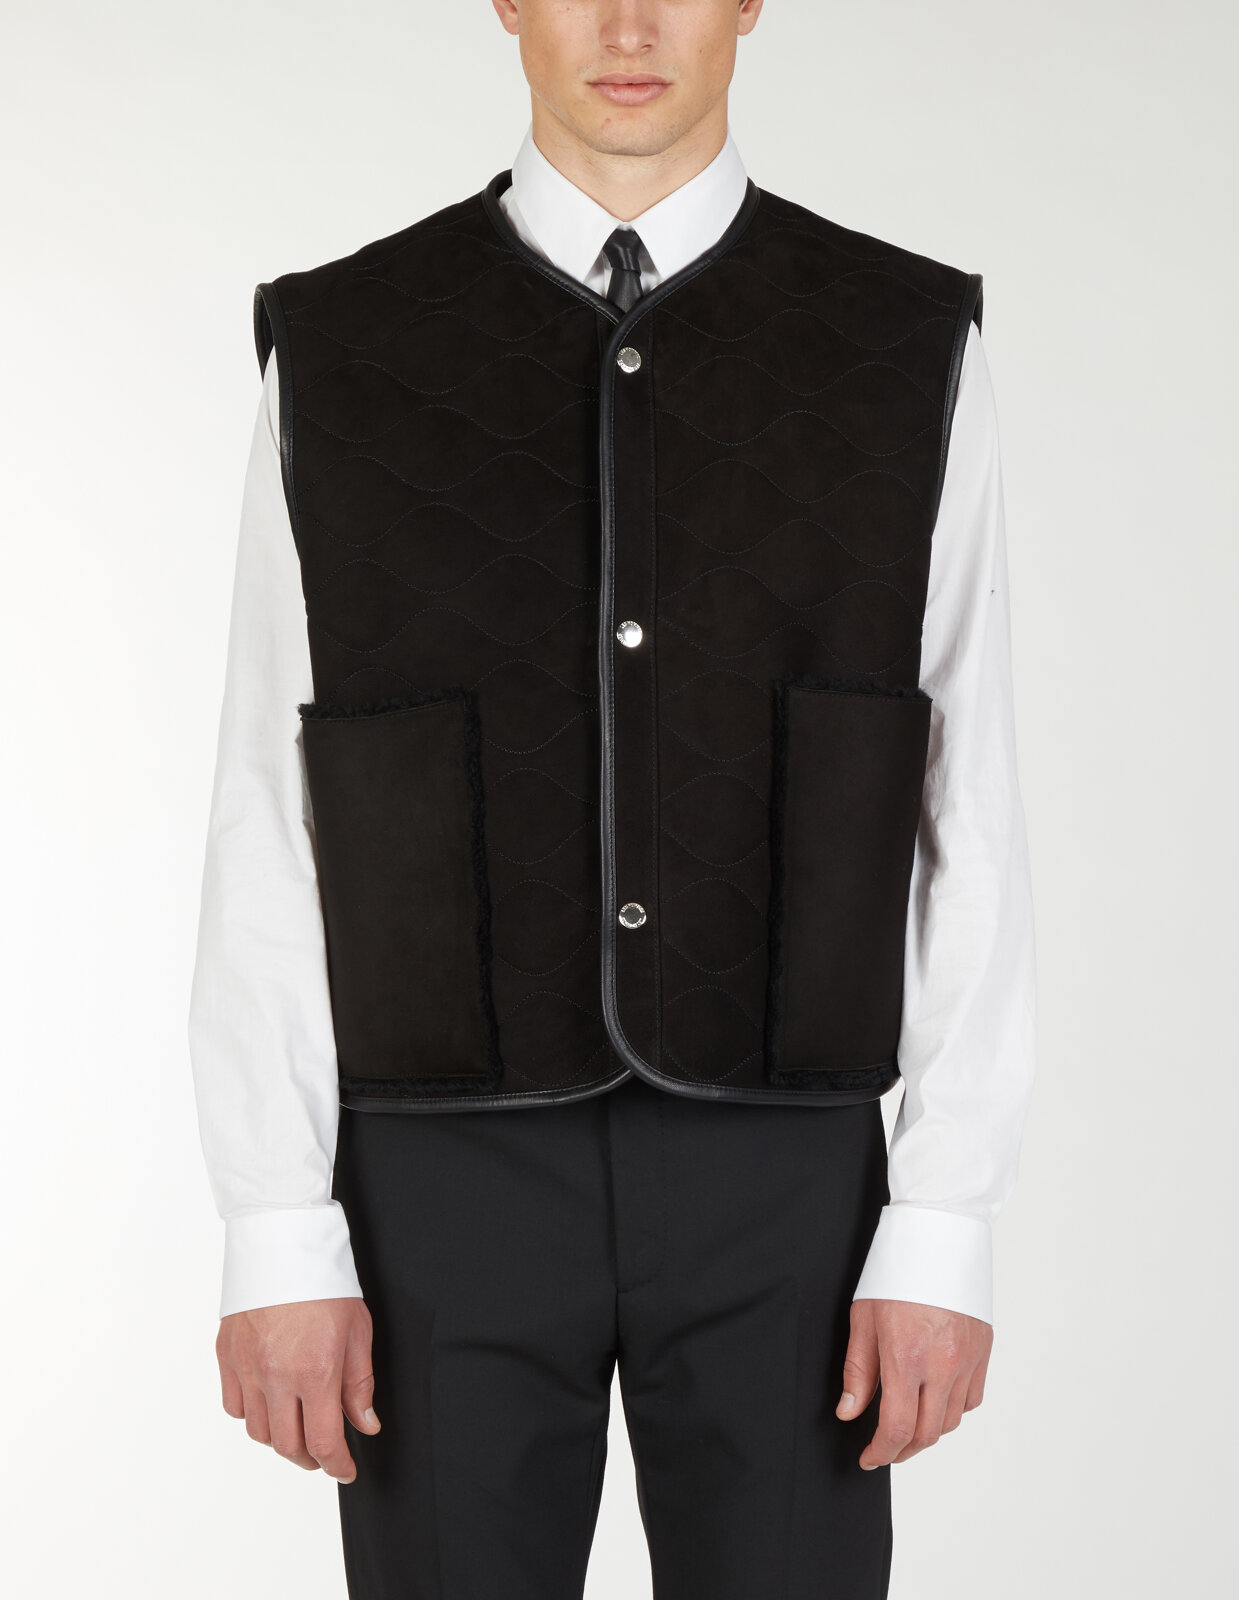 Vest With Shearling Pockets - Les Hommes